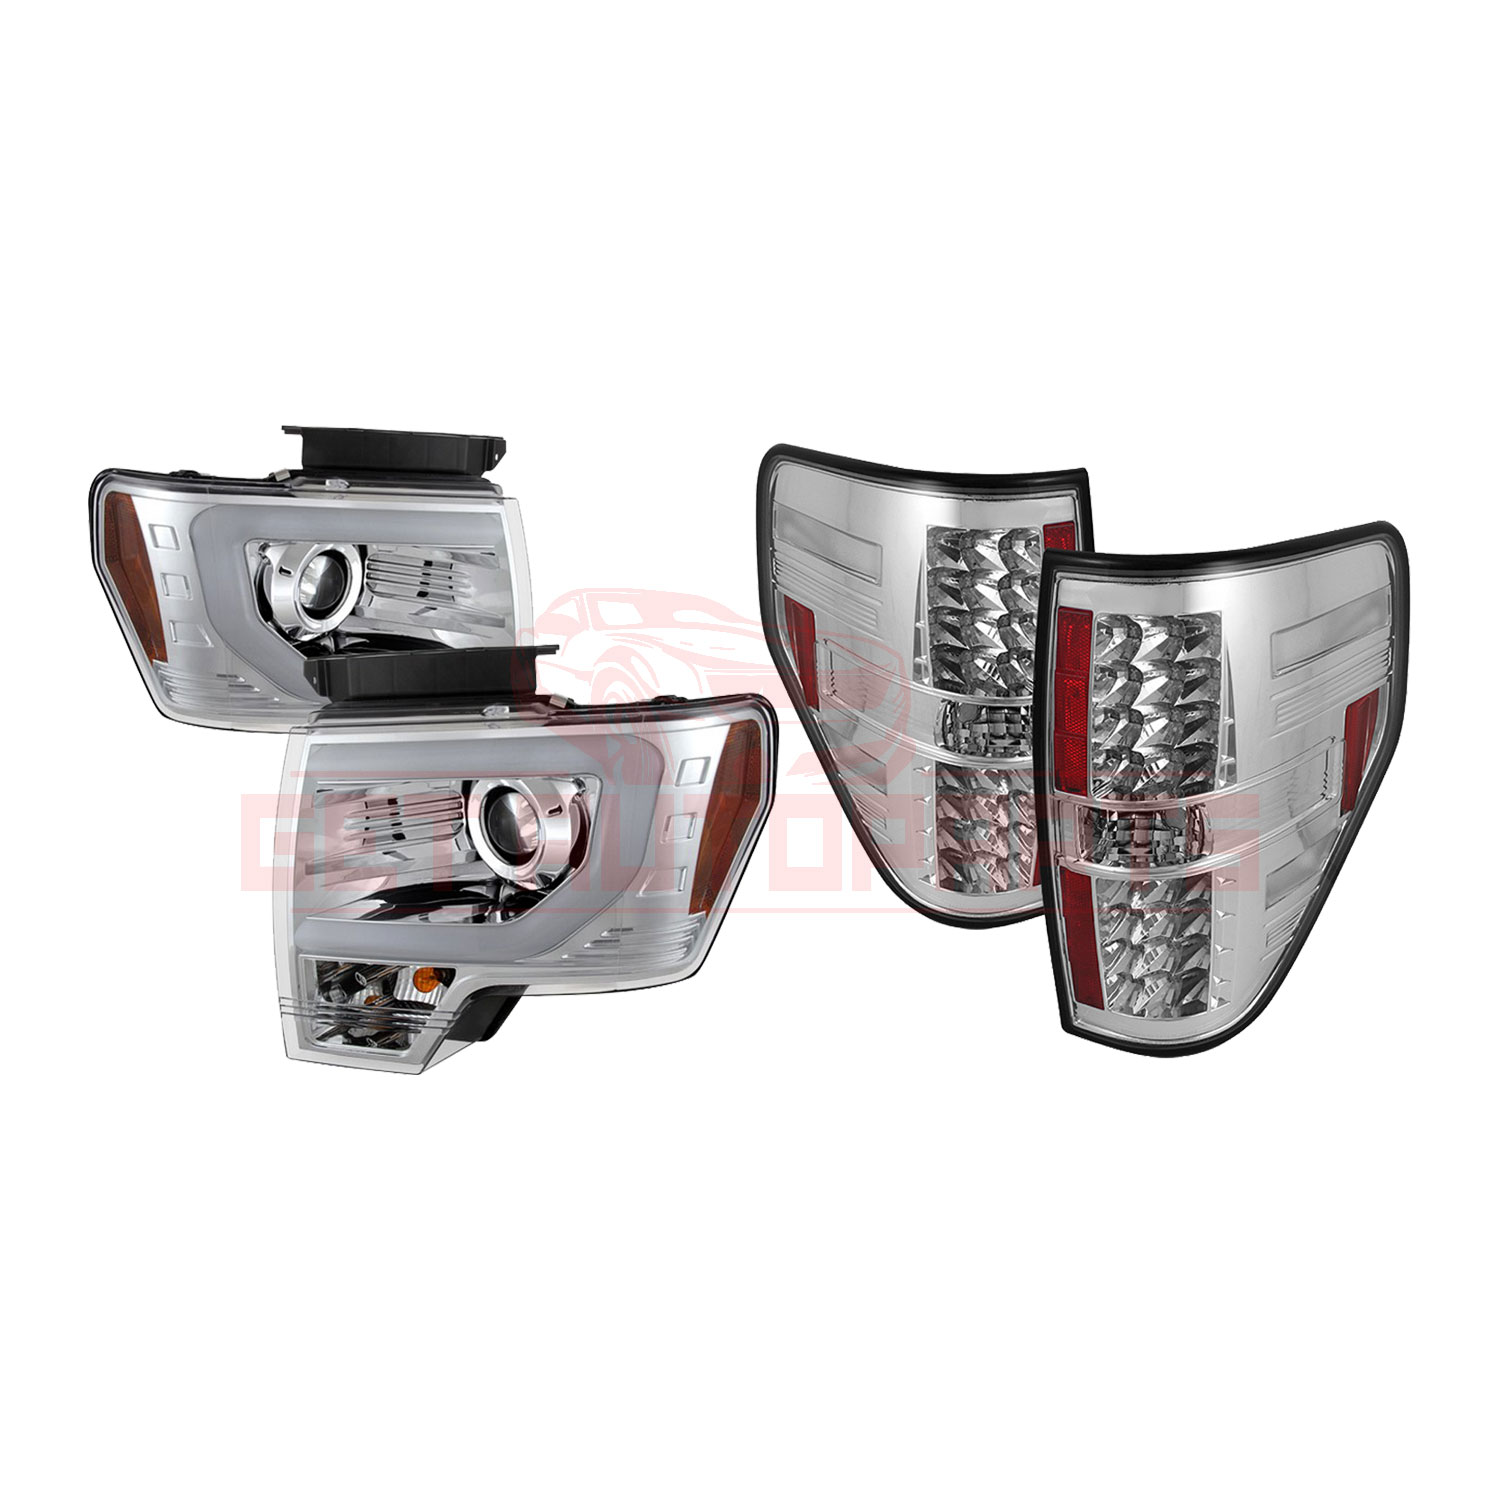 Spyder Projector Headlights & LED Tail Lights for Ford F150 2013-2014 part in Headlight & Tail Light Covers category